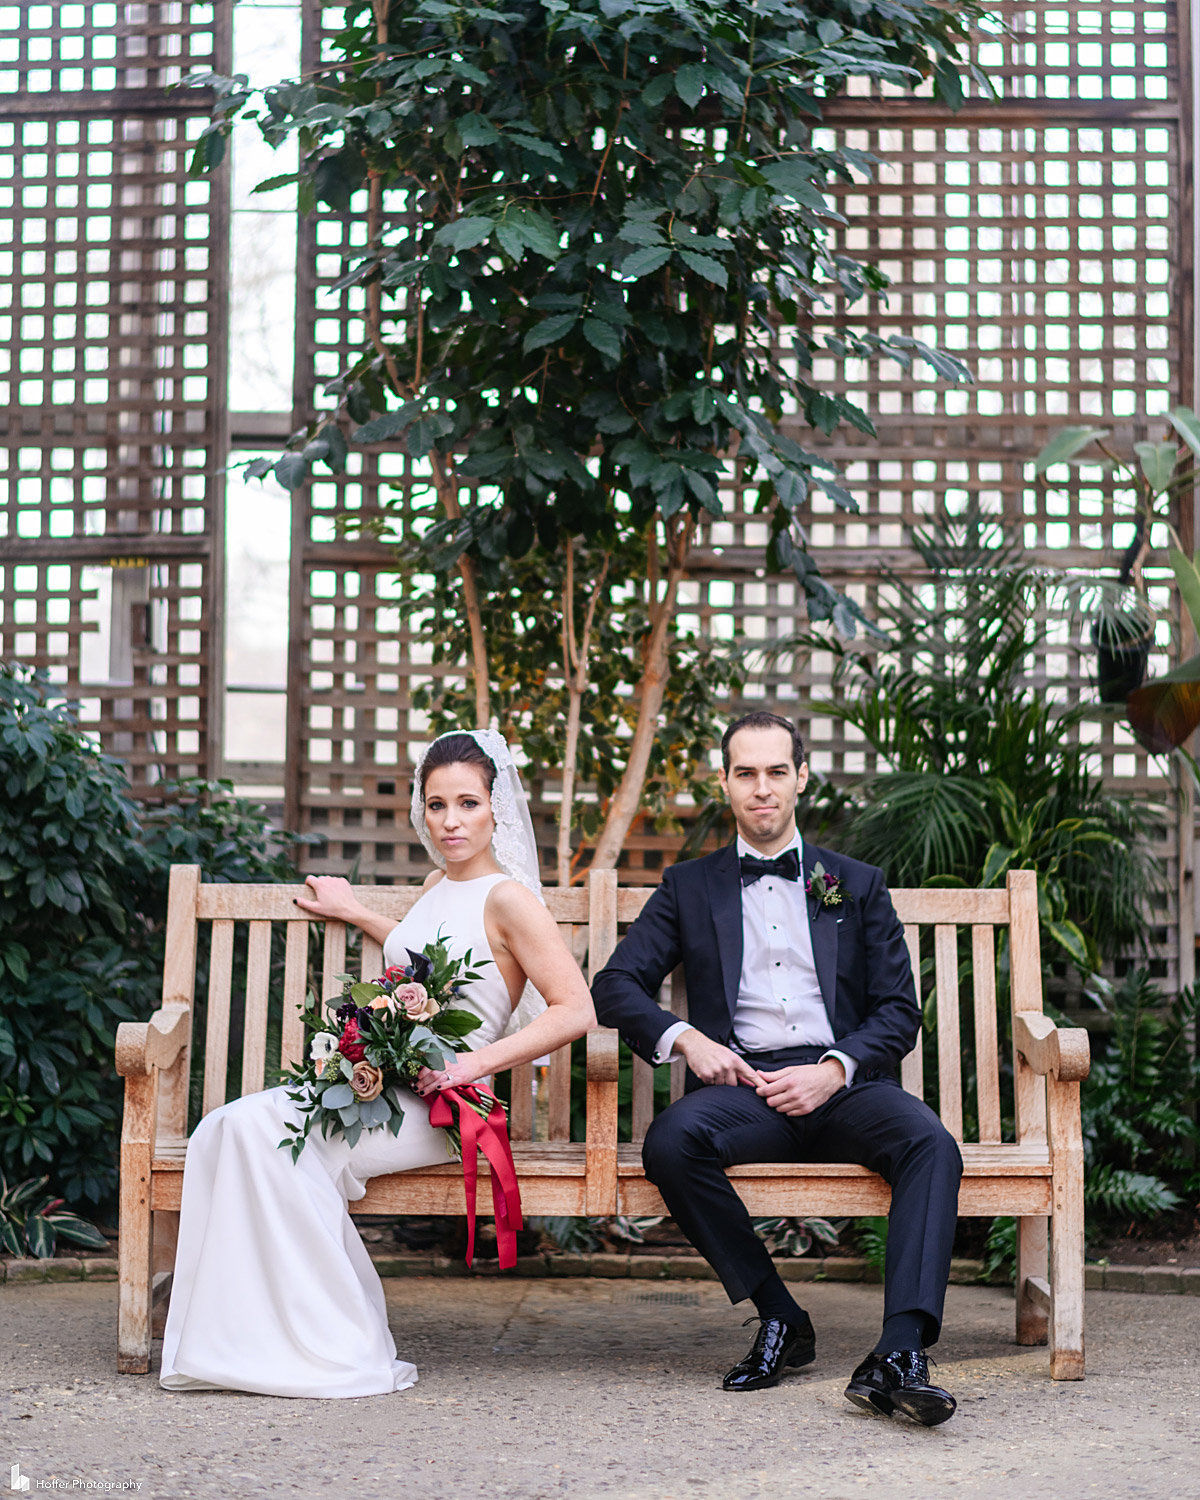 Bride and groom sit on a bench at the Horticulture Center in Philadelphia